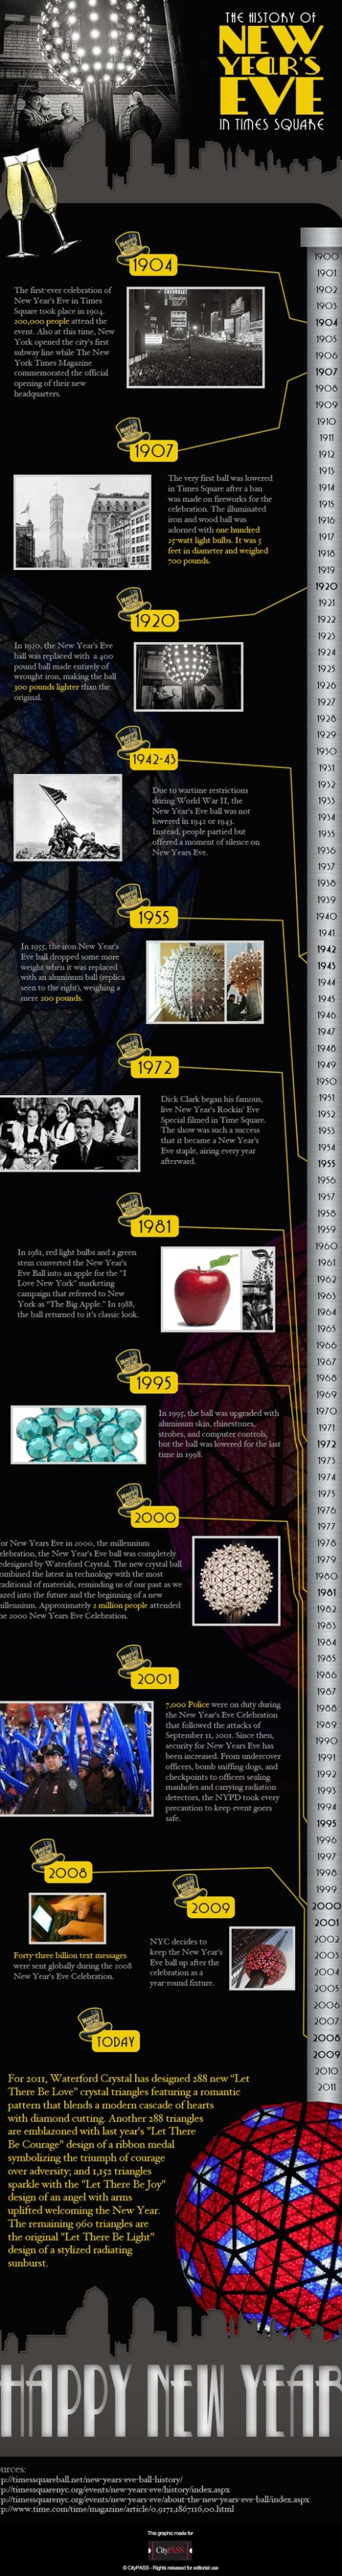 History of New Years Eve in Times Square, New York City